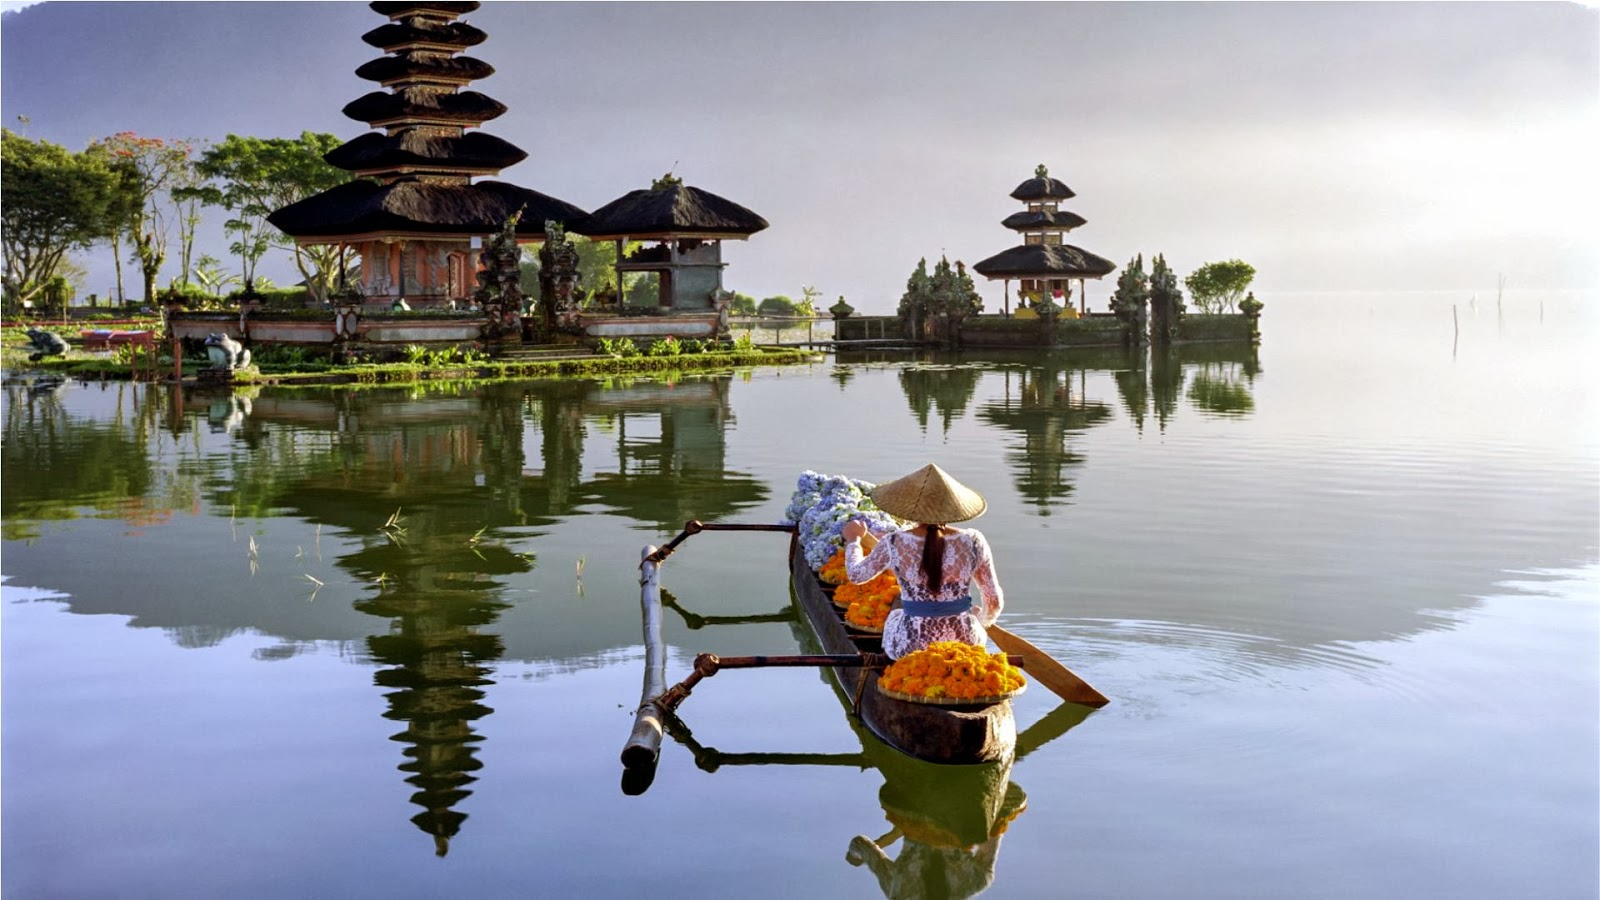 16 Wallpaper Bali Indonesia  Deloiz Wallpaper